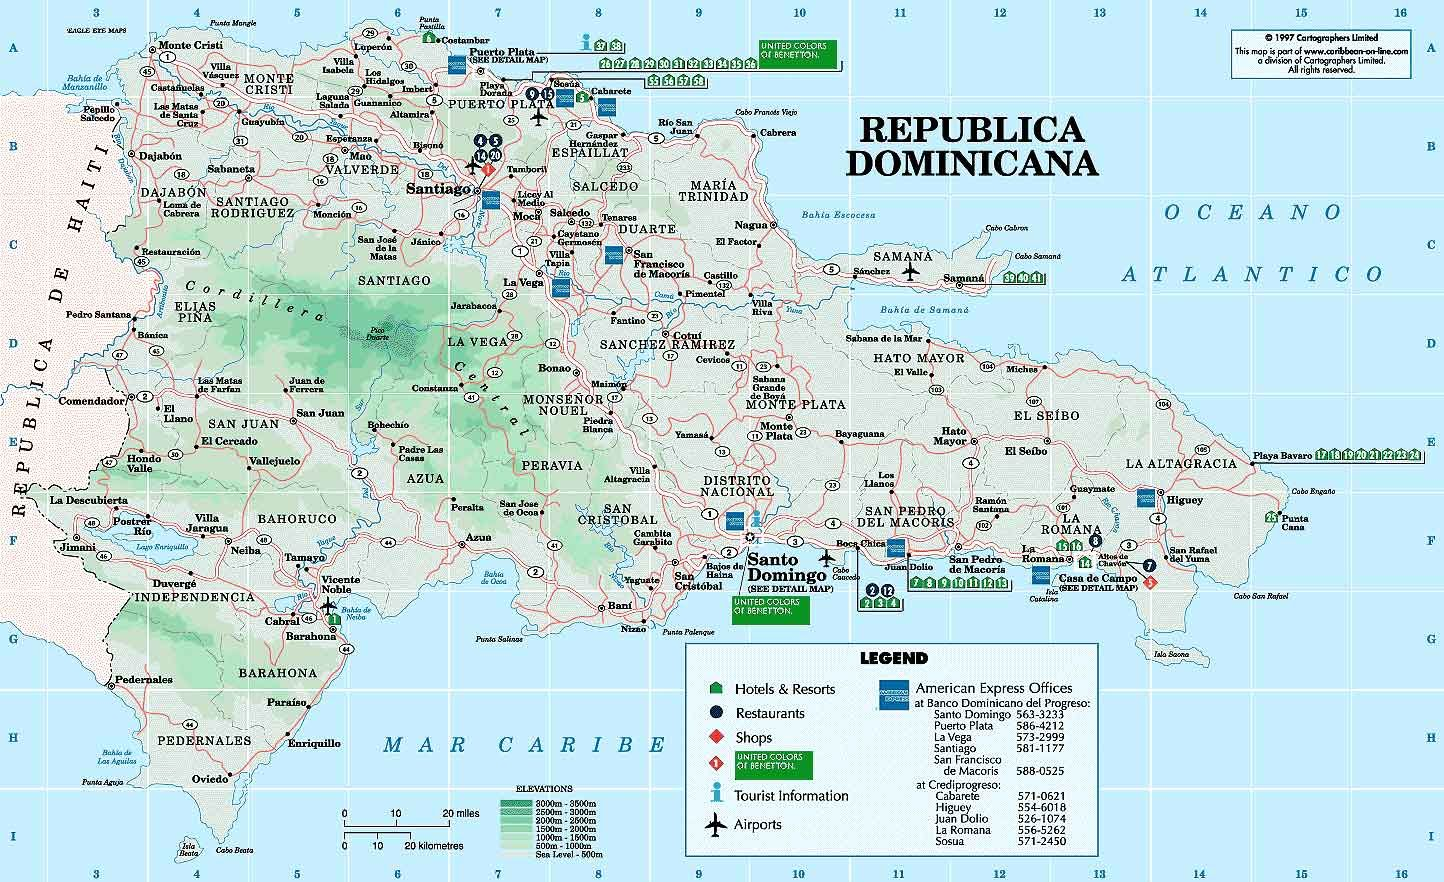 Pin By Boris Garcia On Favorite Places Spaces Dominican Republic Map Tourist Attraction Tourist